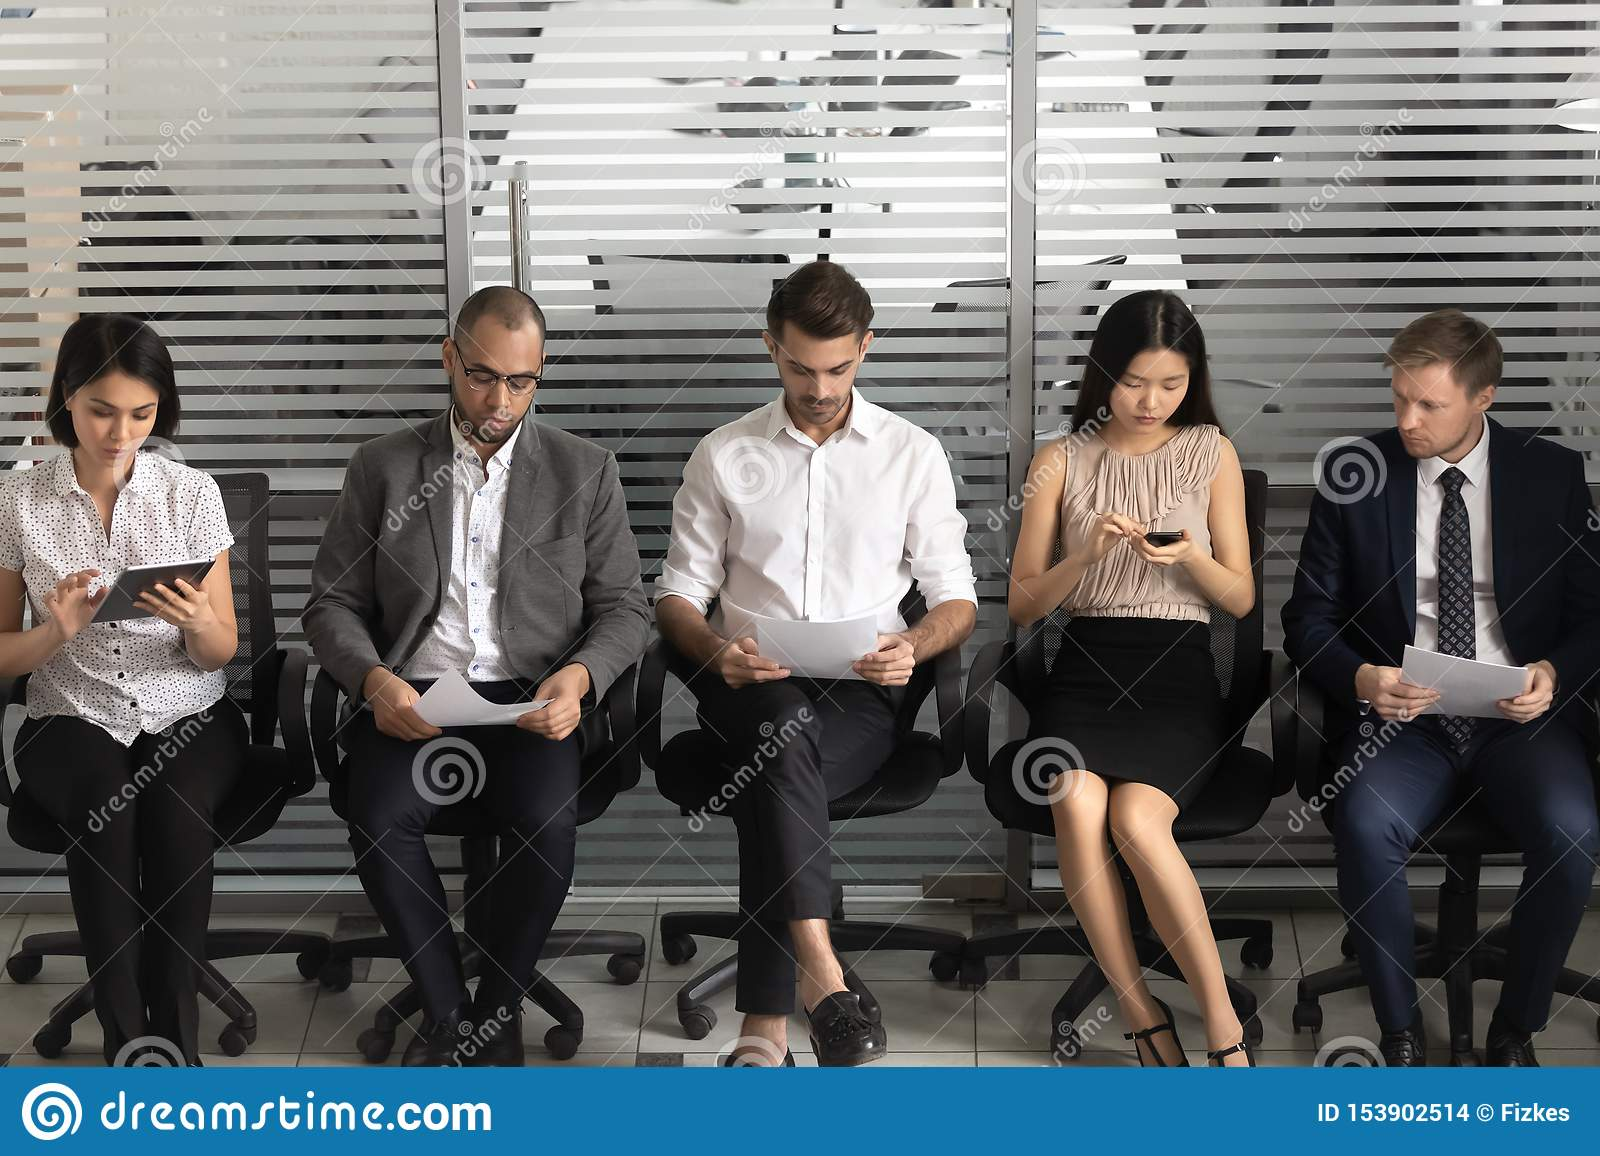 Diverse applicants sit on chairs in row in waiting room